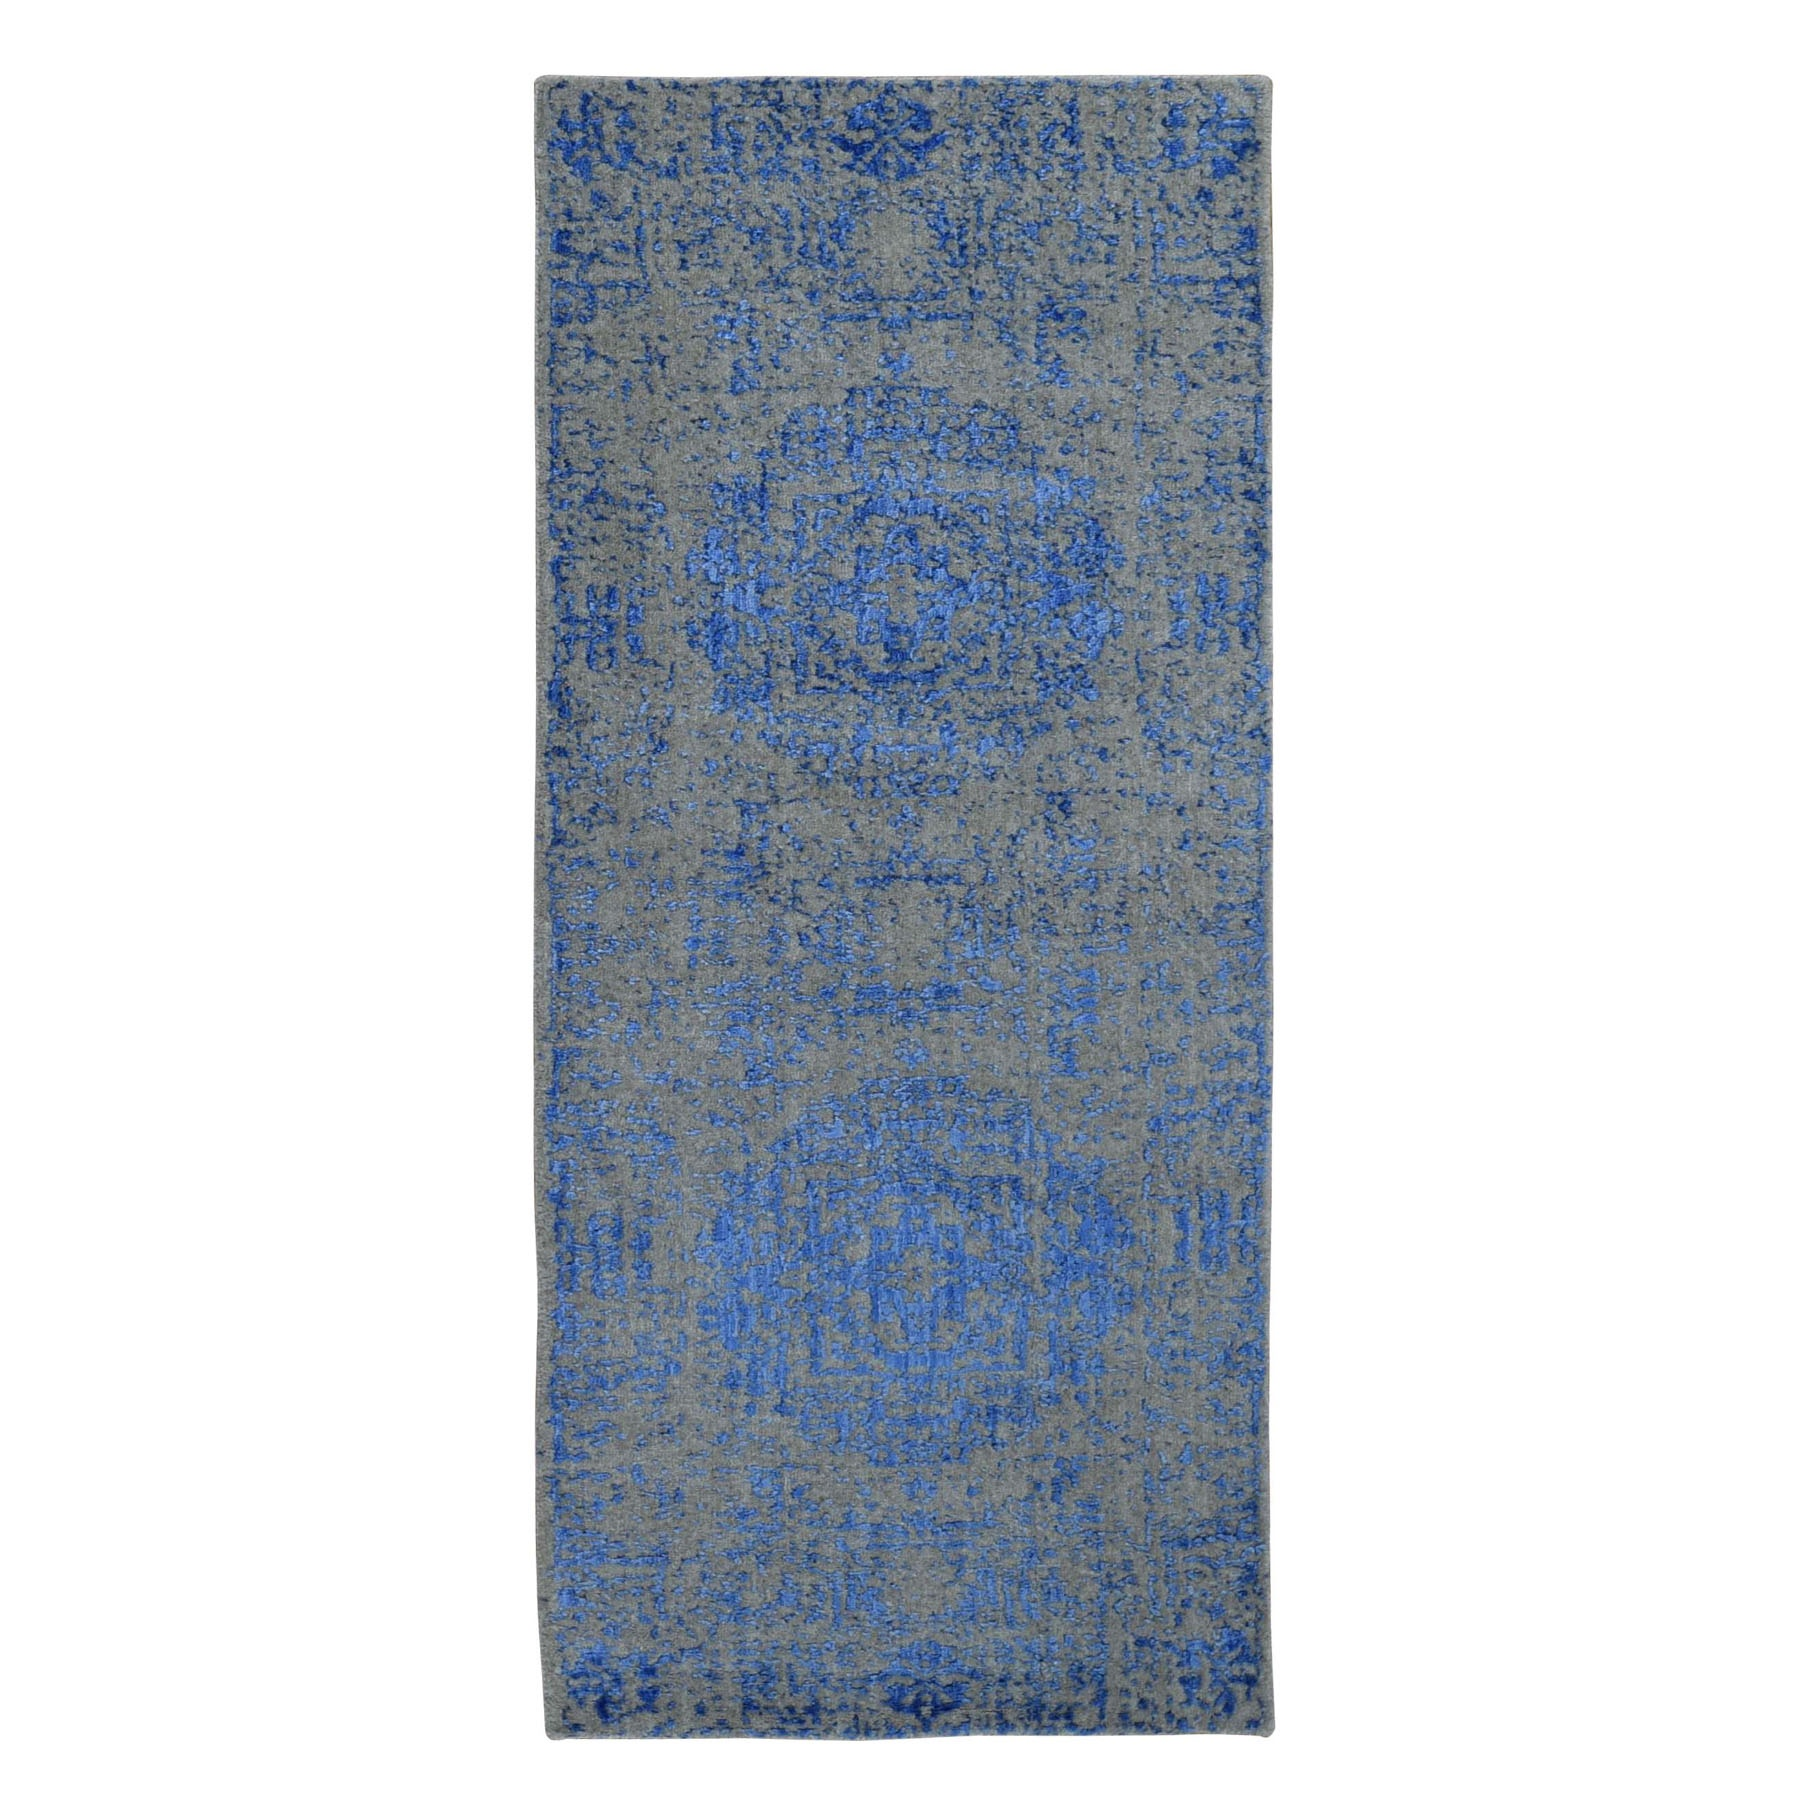 "2'5""X6' Blue Fine Jacquard Mamluk Design Hand Loomed Wool And Art Silk Runner Oriental Rug moad9aa8"